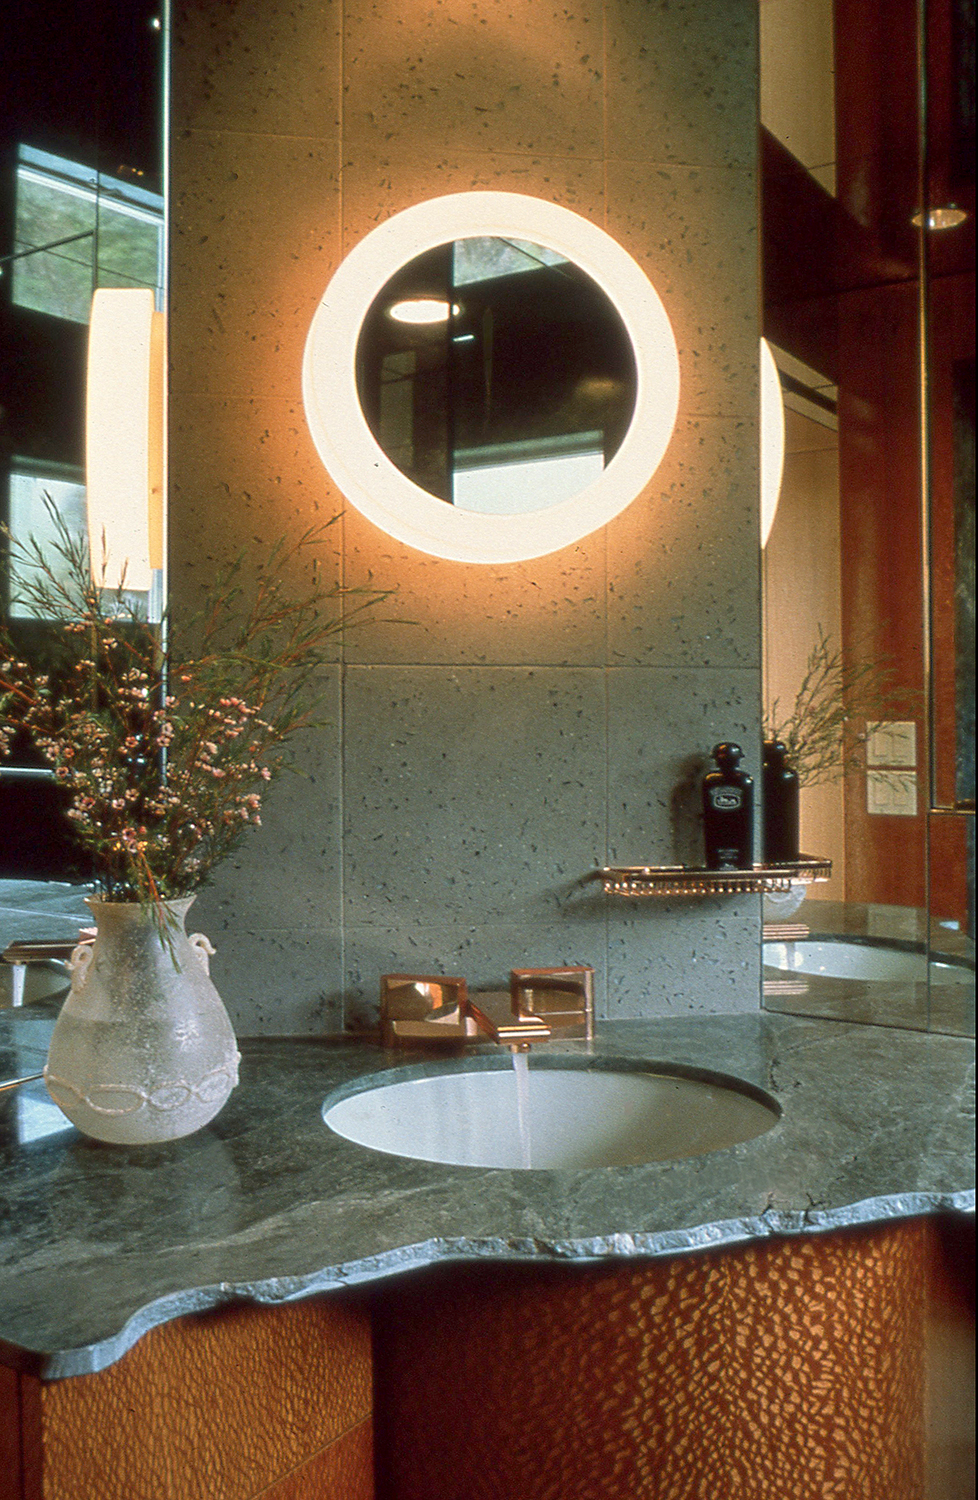 Home Design Project_Bathroom_Lacewood and Marble_012_3x5.jpg